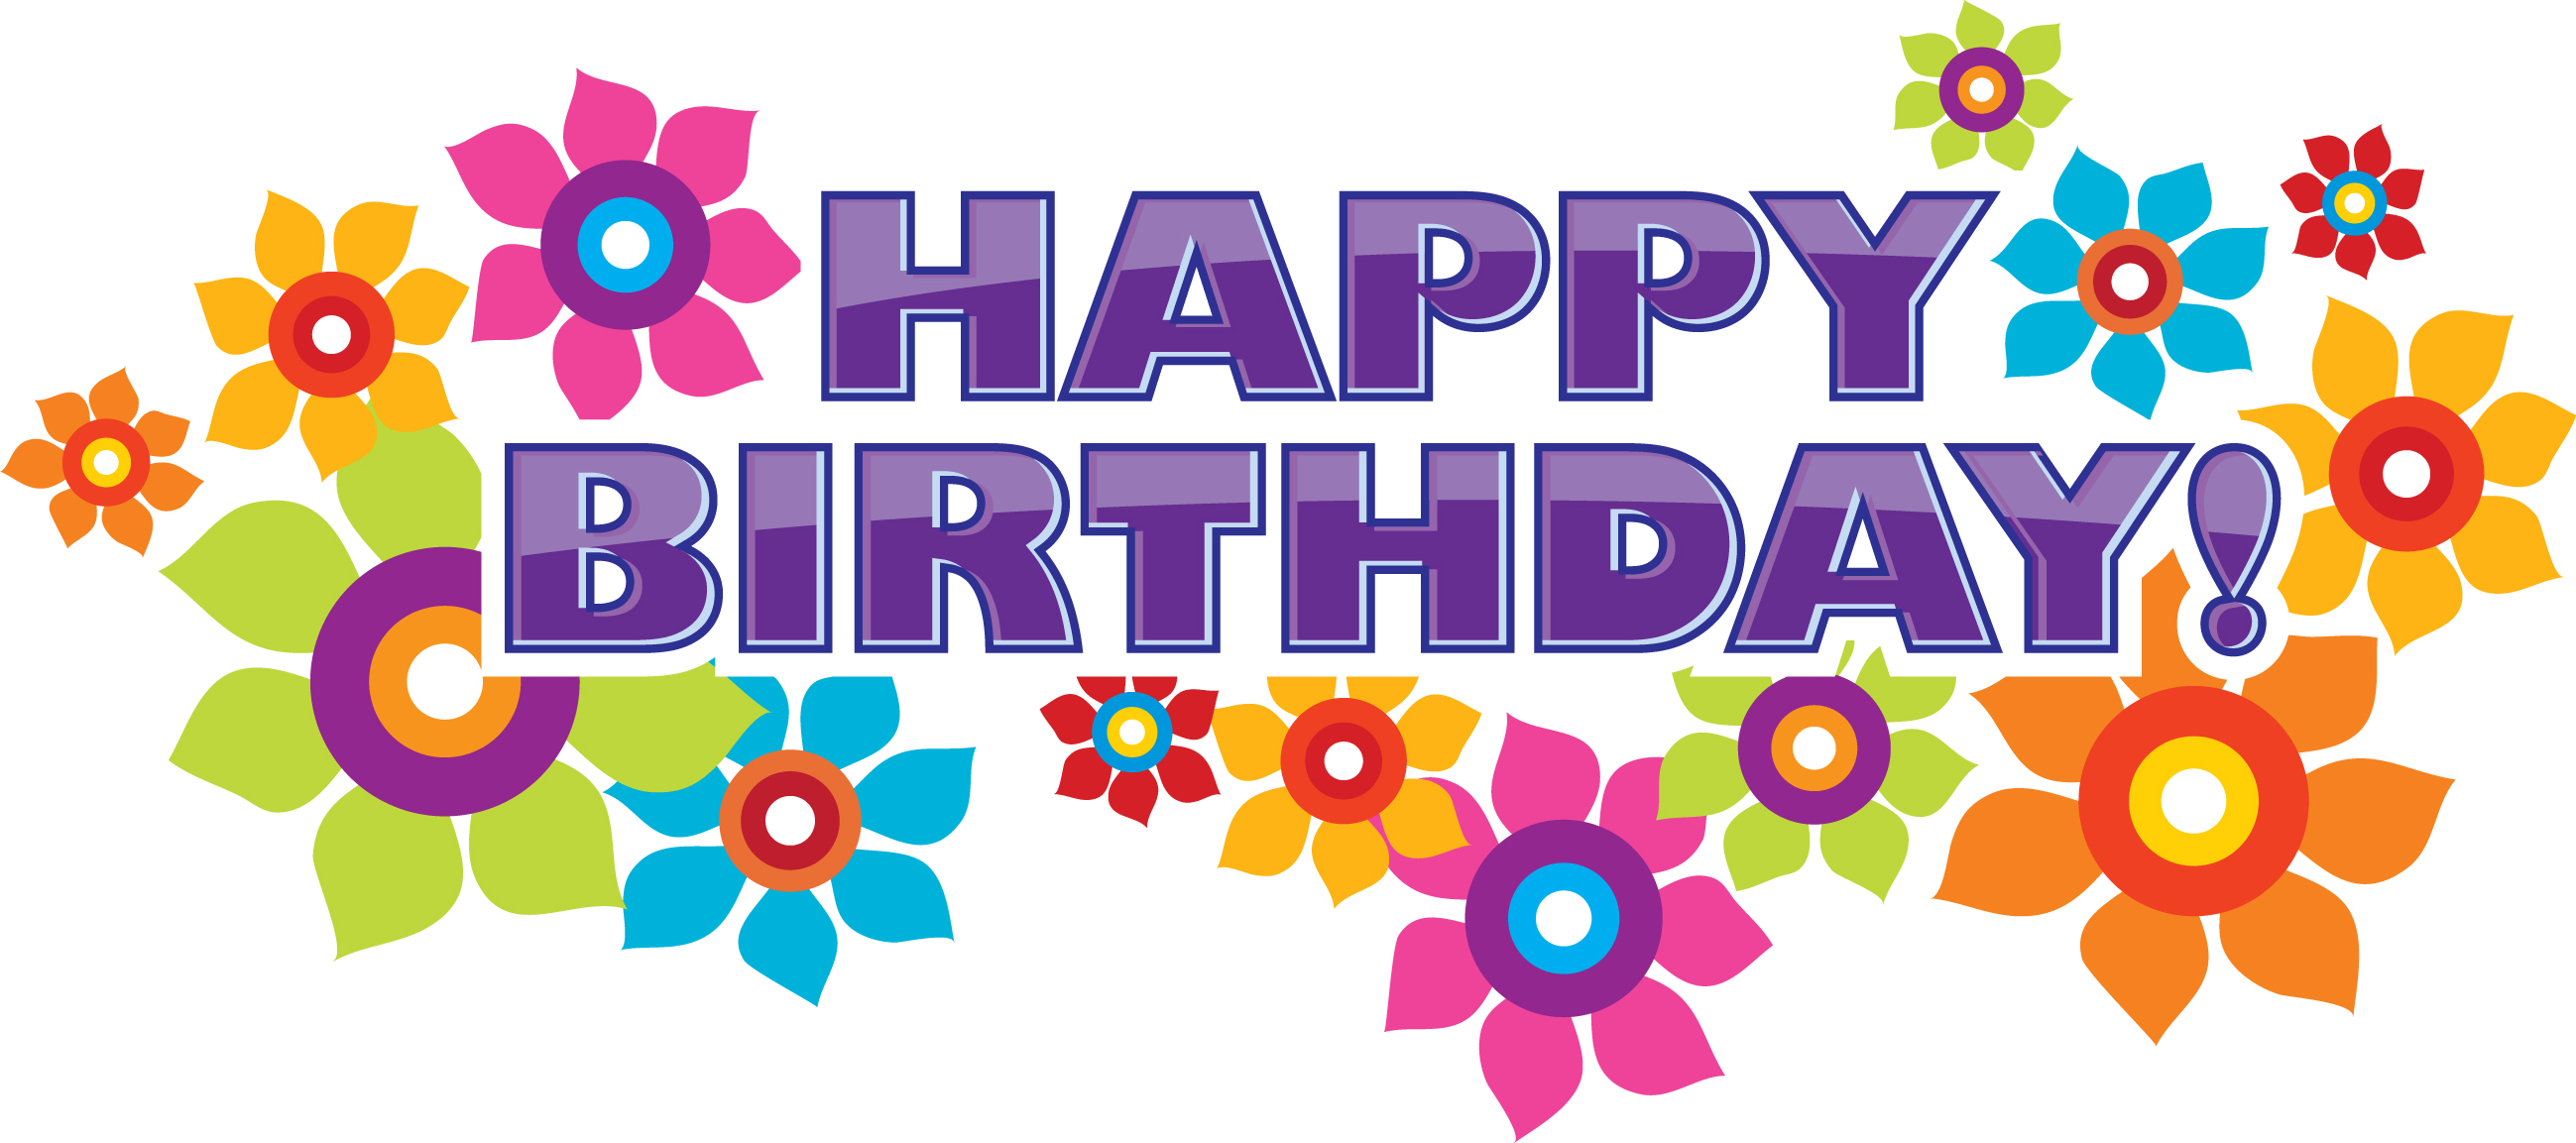 happy birthday word clipart ; free-vector-happy-birthday-elements-04-vector_004922_happy%2520birthday%2520(4)